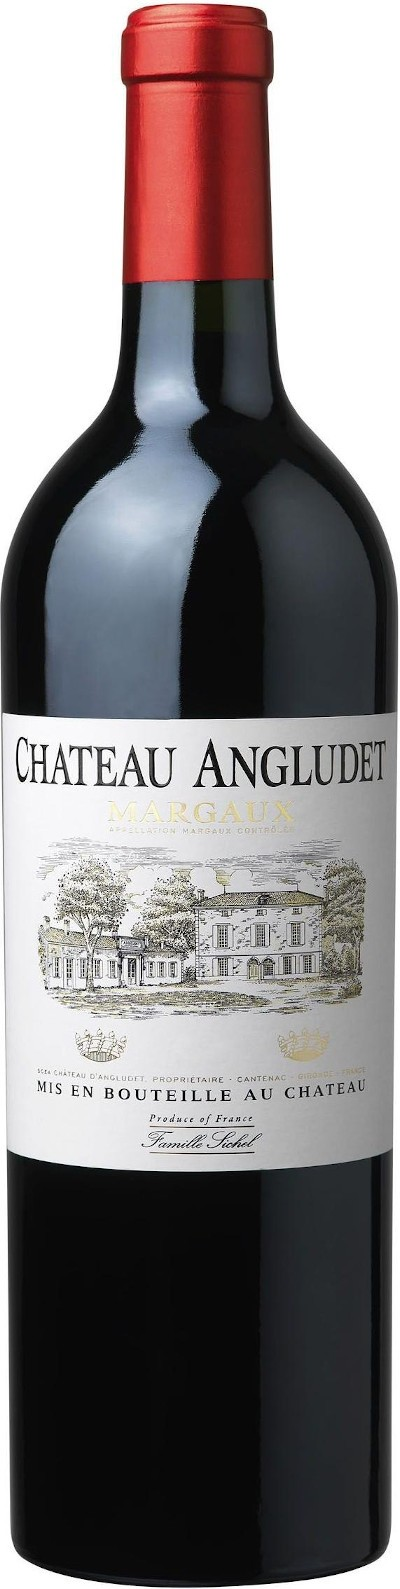 Chateau Angludet - Margaux Magnum, 2009